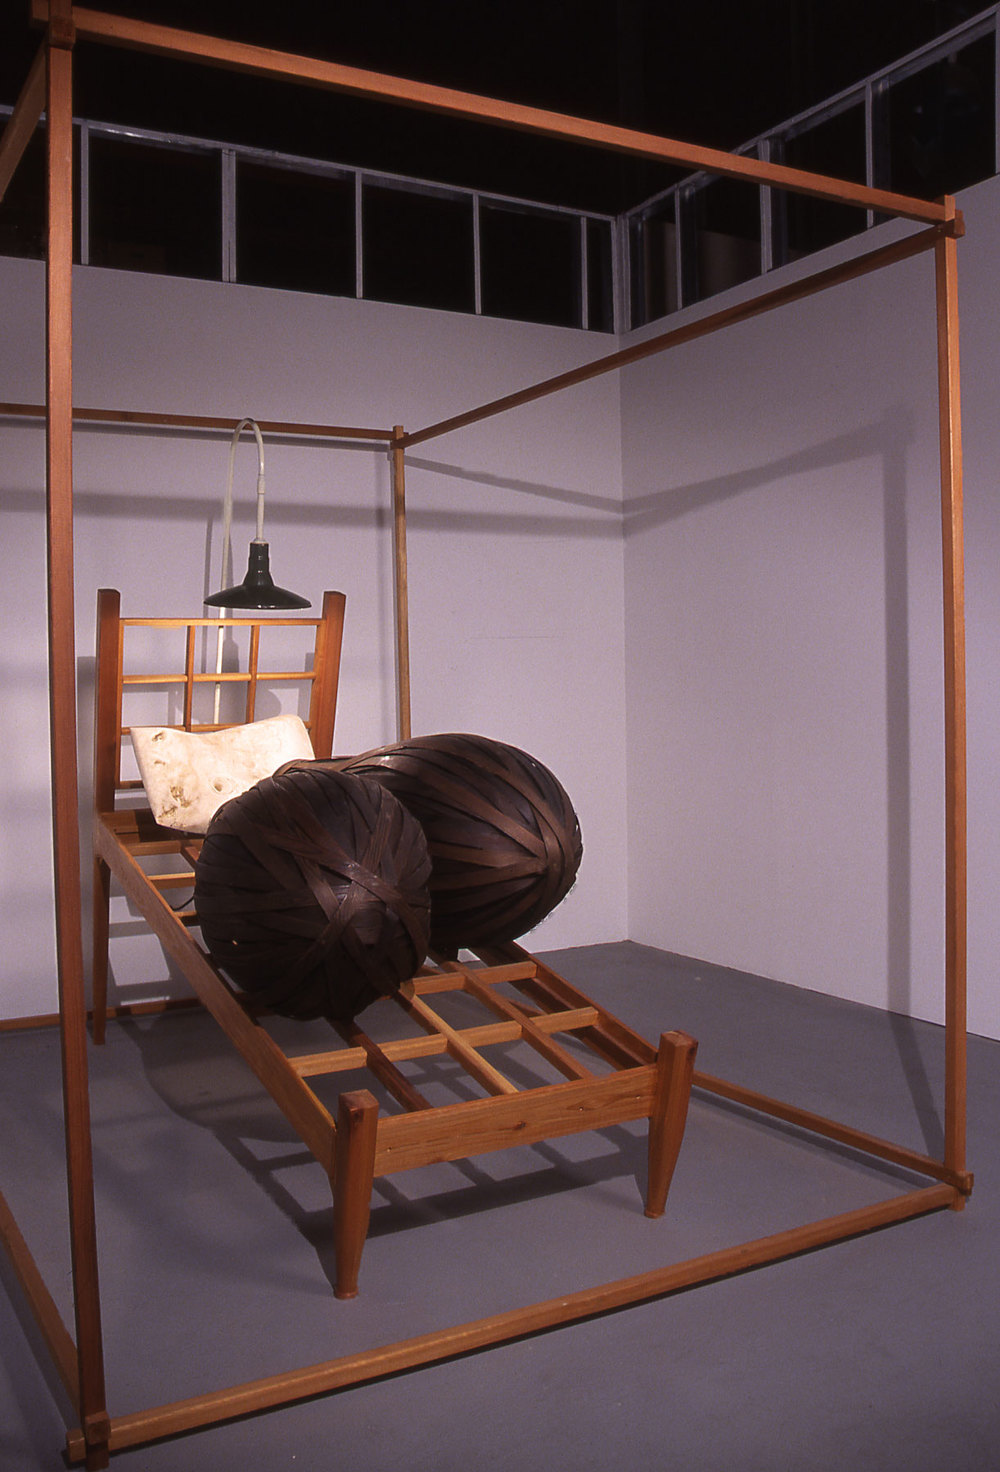 wood-sculpture-tom-gormally-sleeping-double-in-a-single-bed.jpg